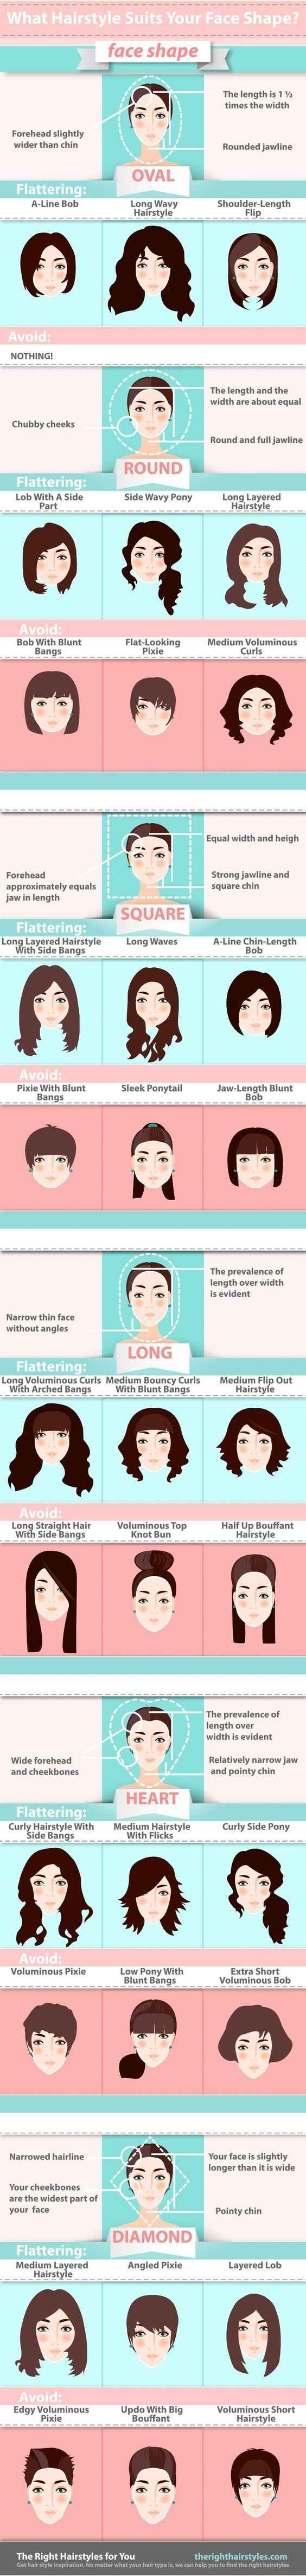 And the right cut for your face shape, too.